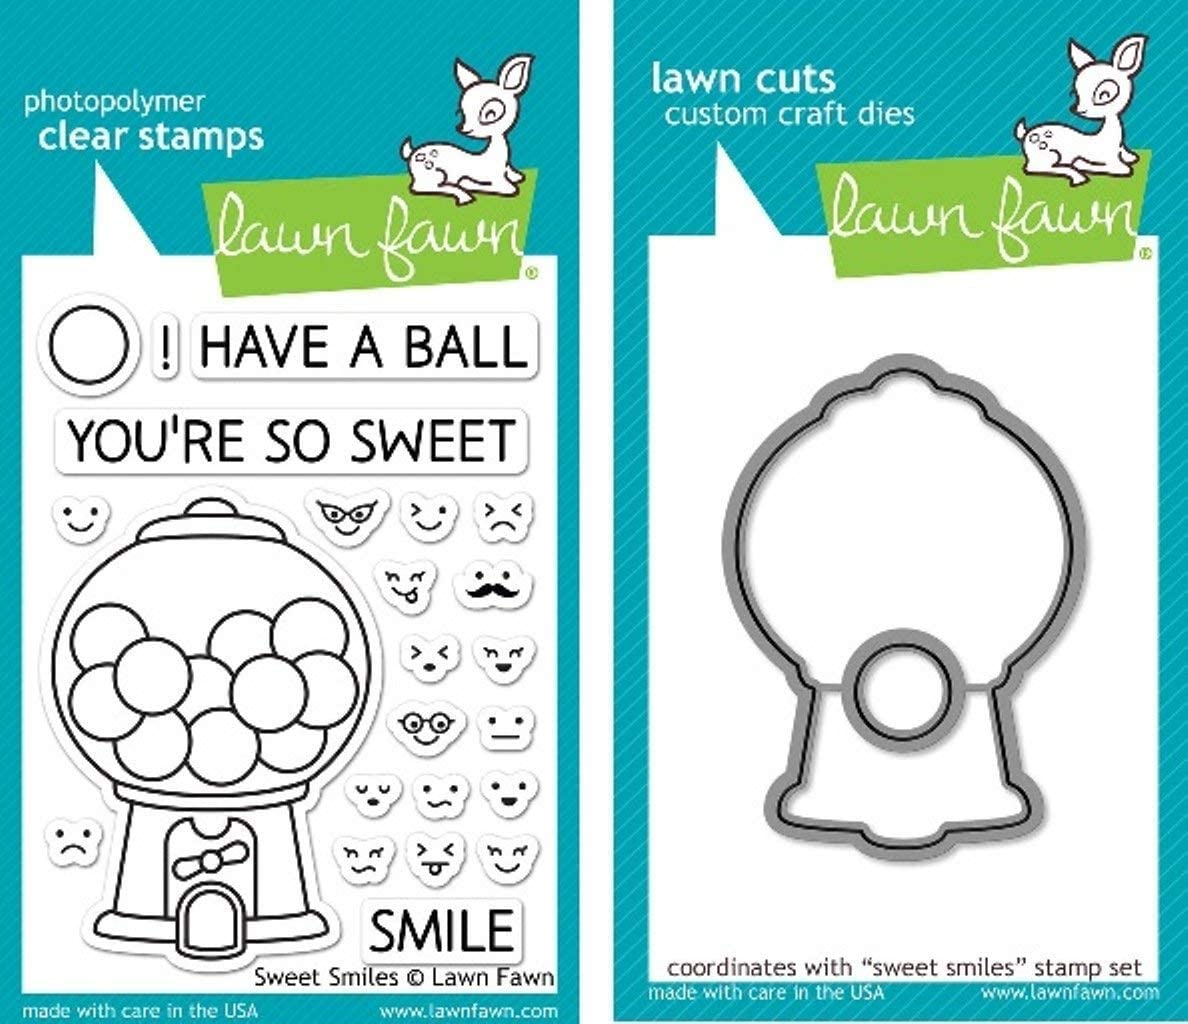 Lawn Fawn Bundle of 2 Items - Sweet Smiles Clear Stamp (LF895) and Die (LF896) Set